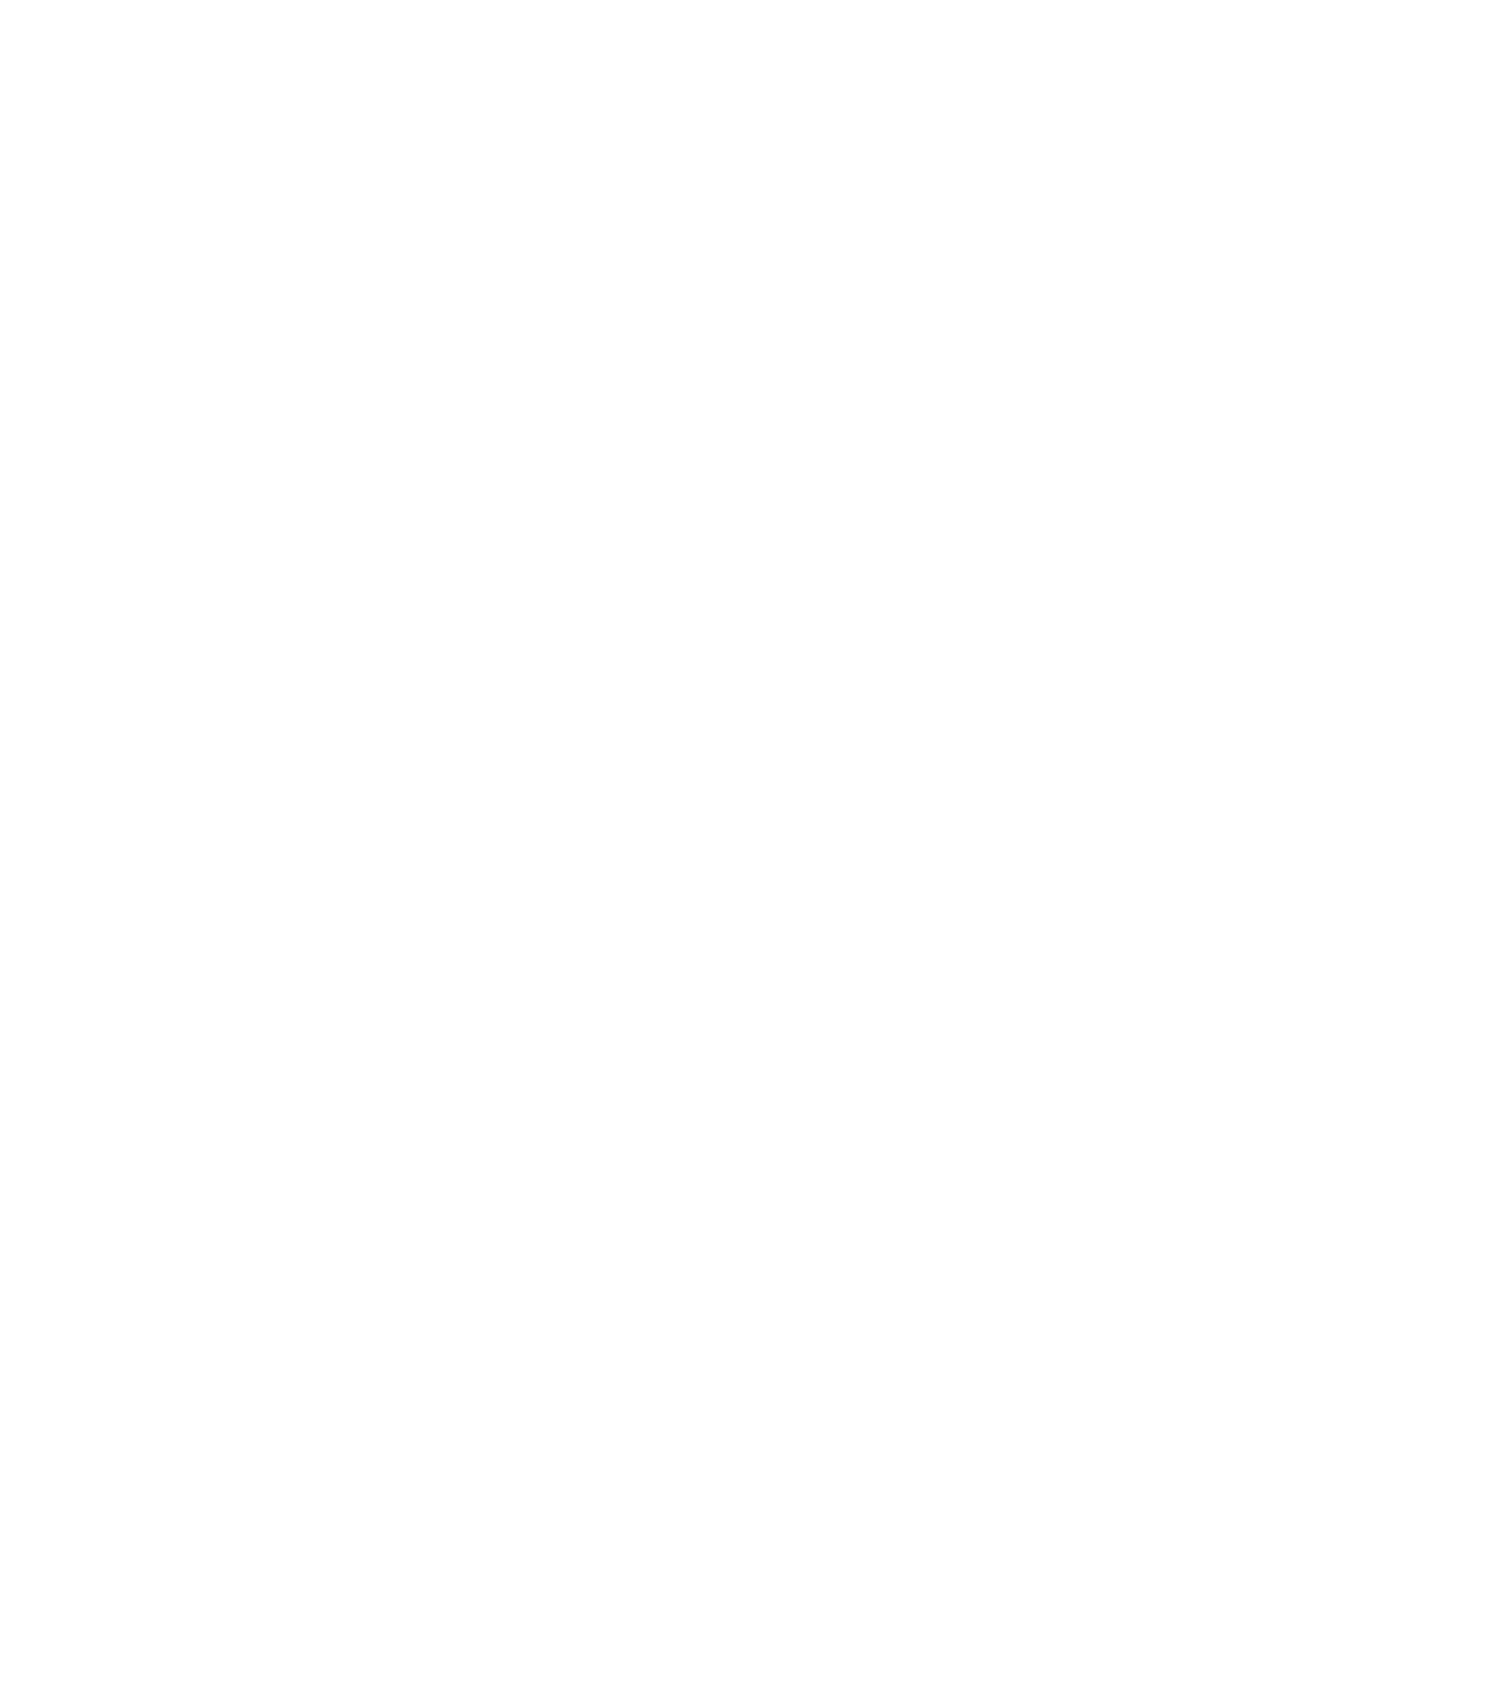 Valley and Ridge Forestry